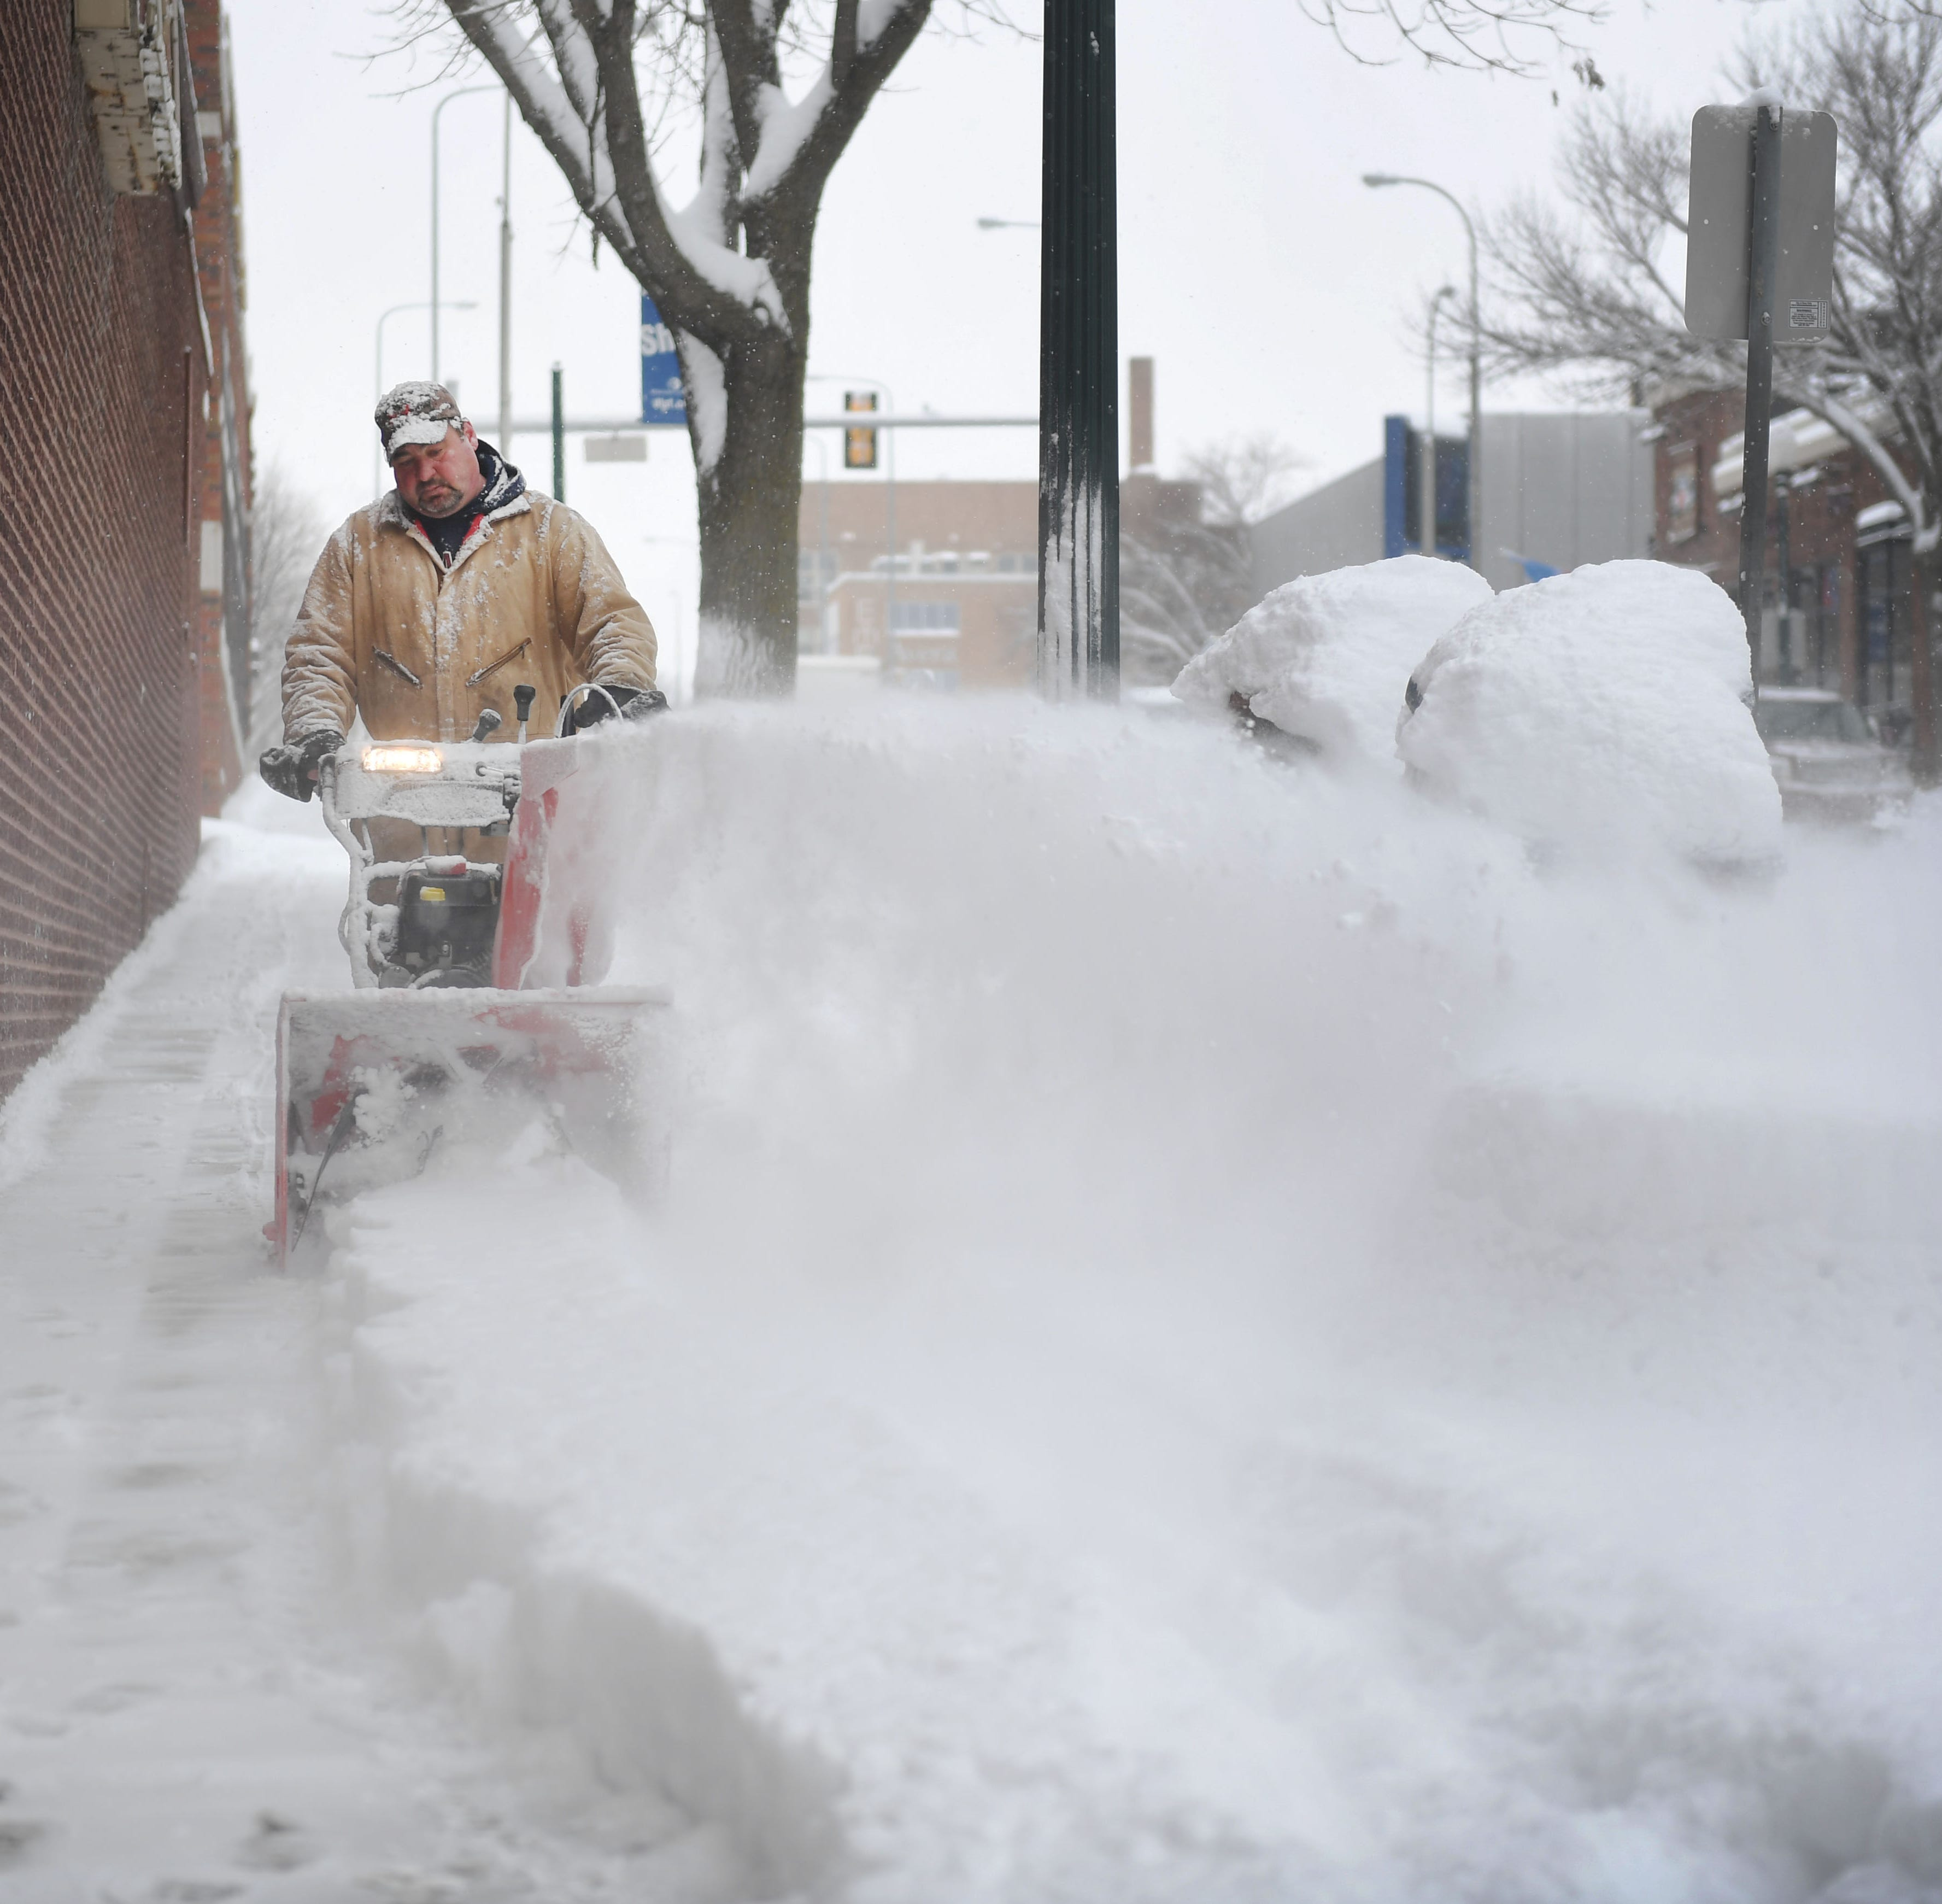 It might seem like the worst winter ever, but data says it's not